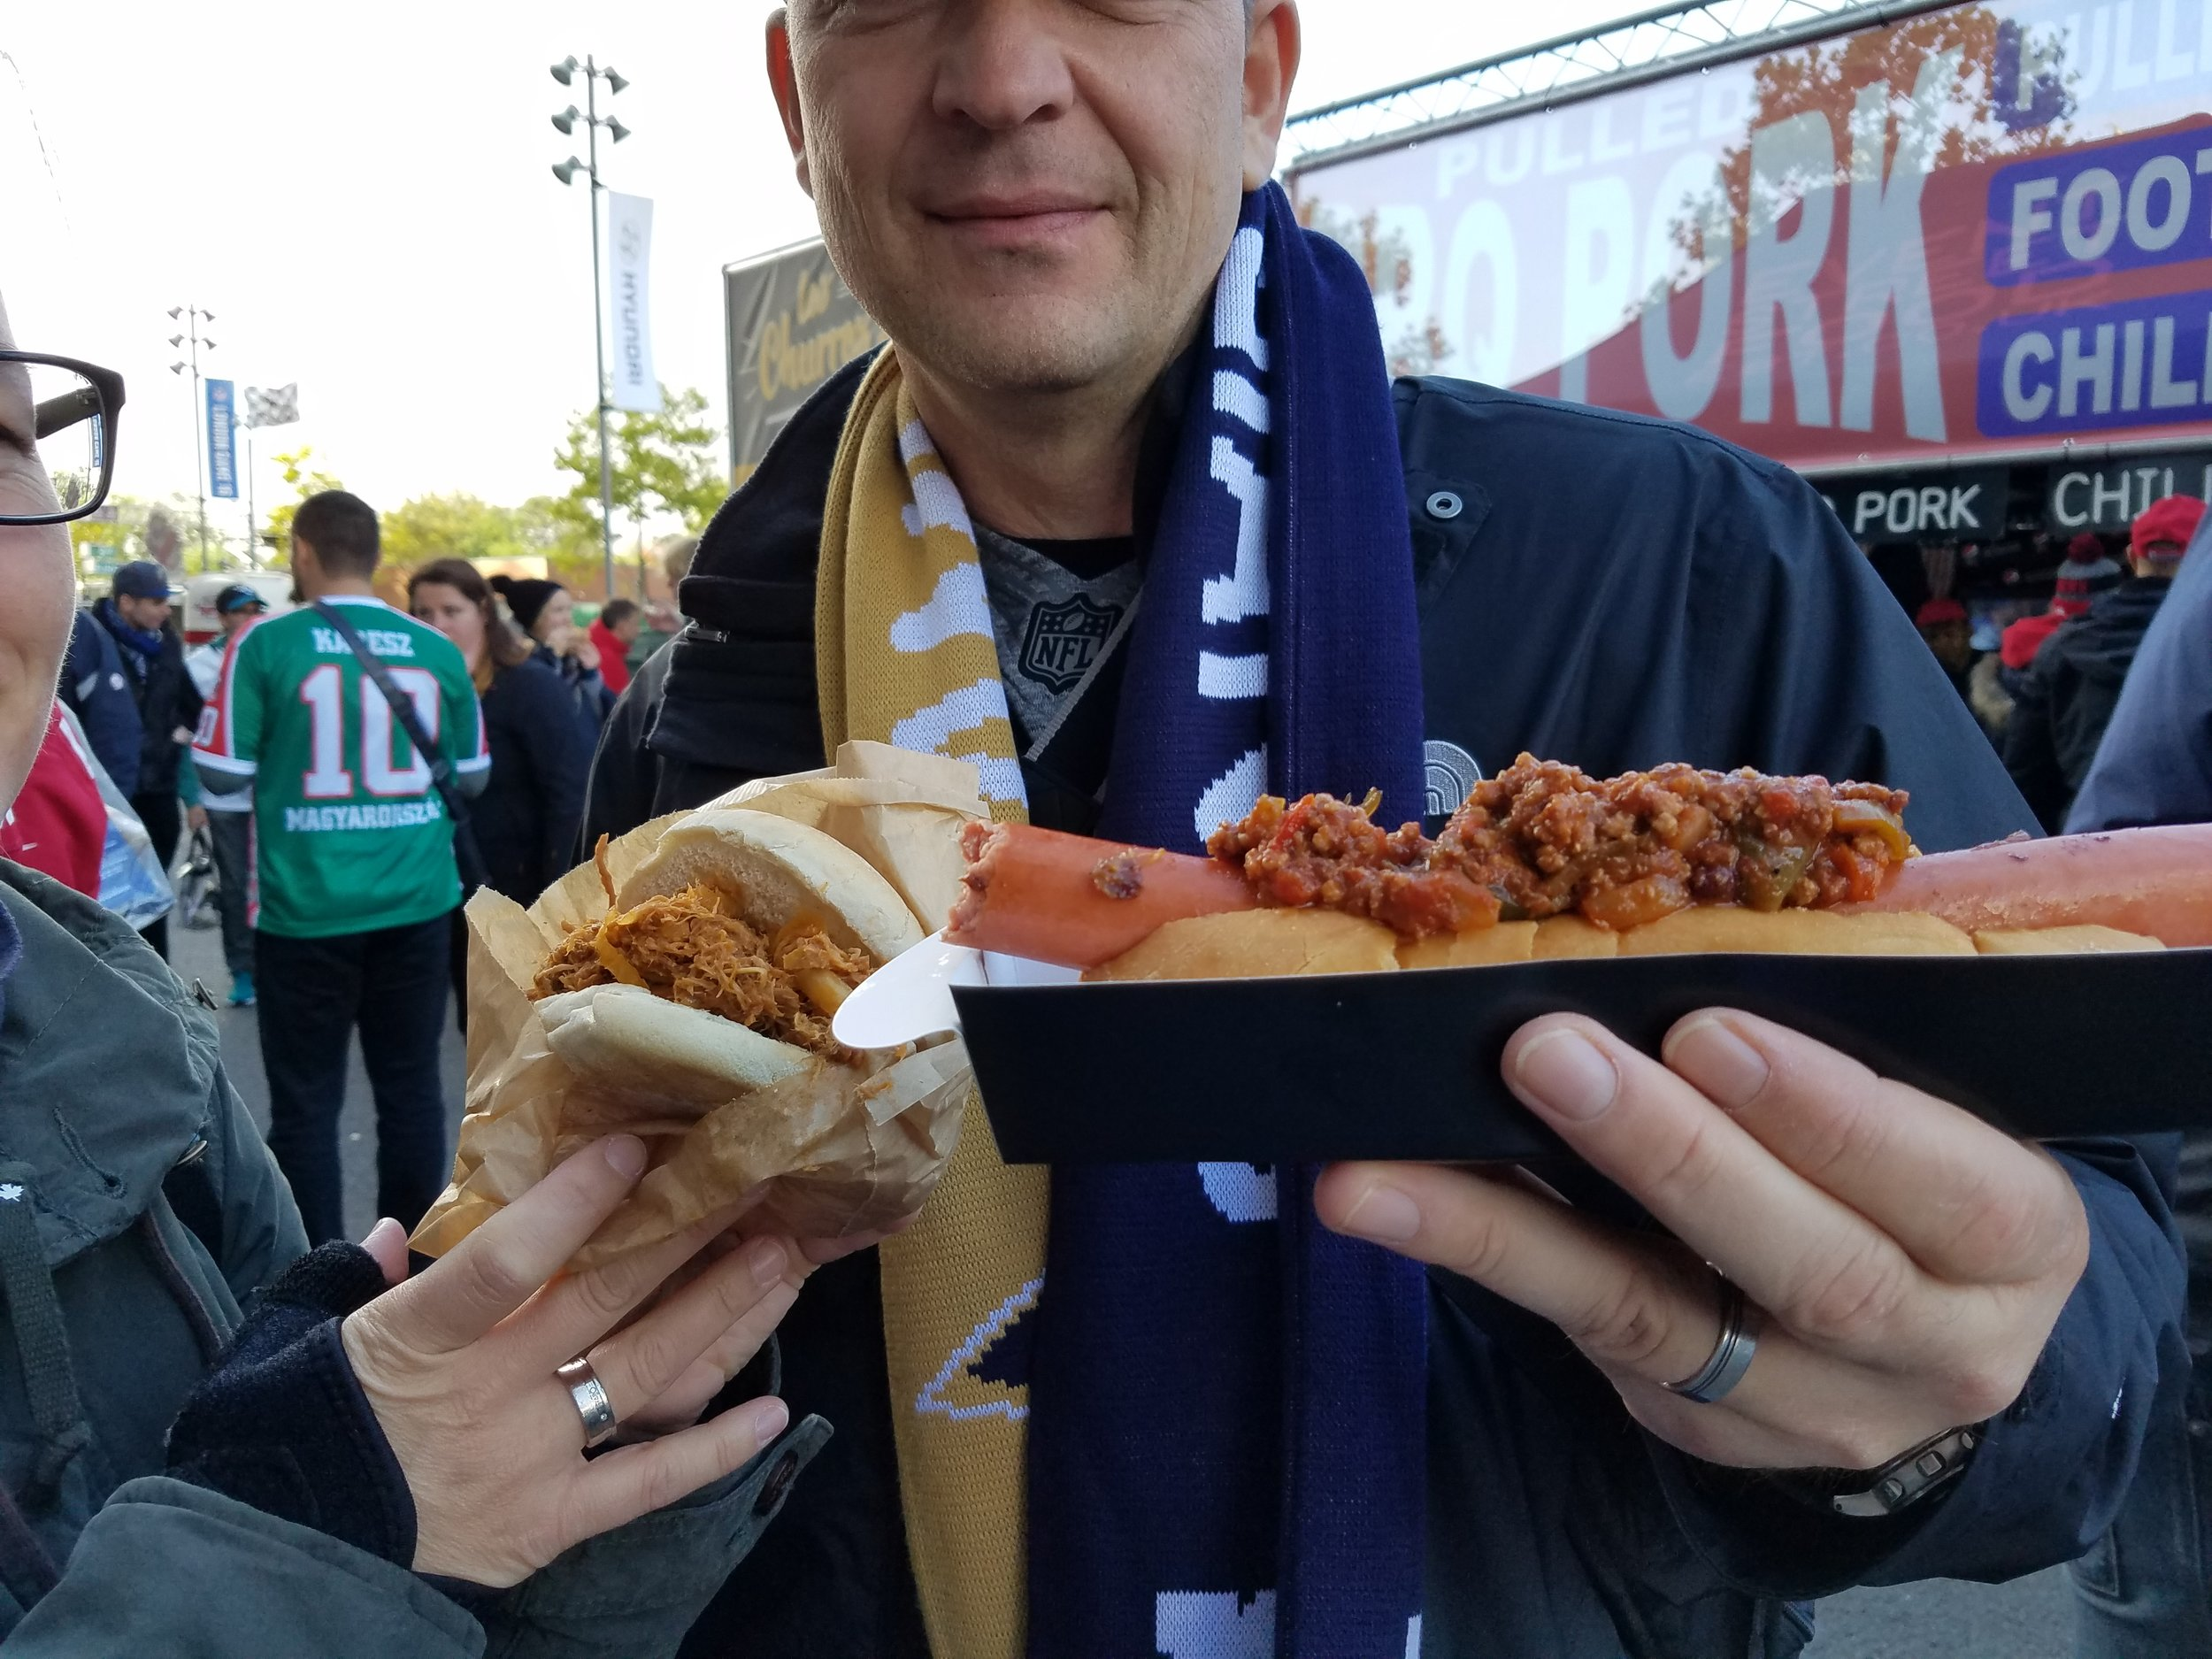 Foot Long hot dog & pulled pork sandwiches available.